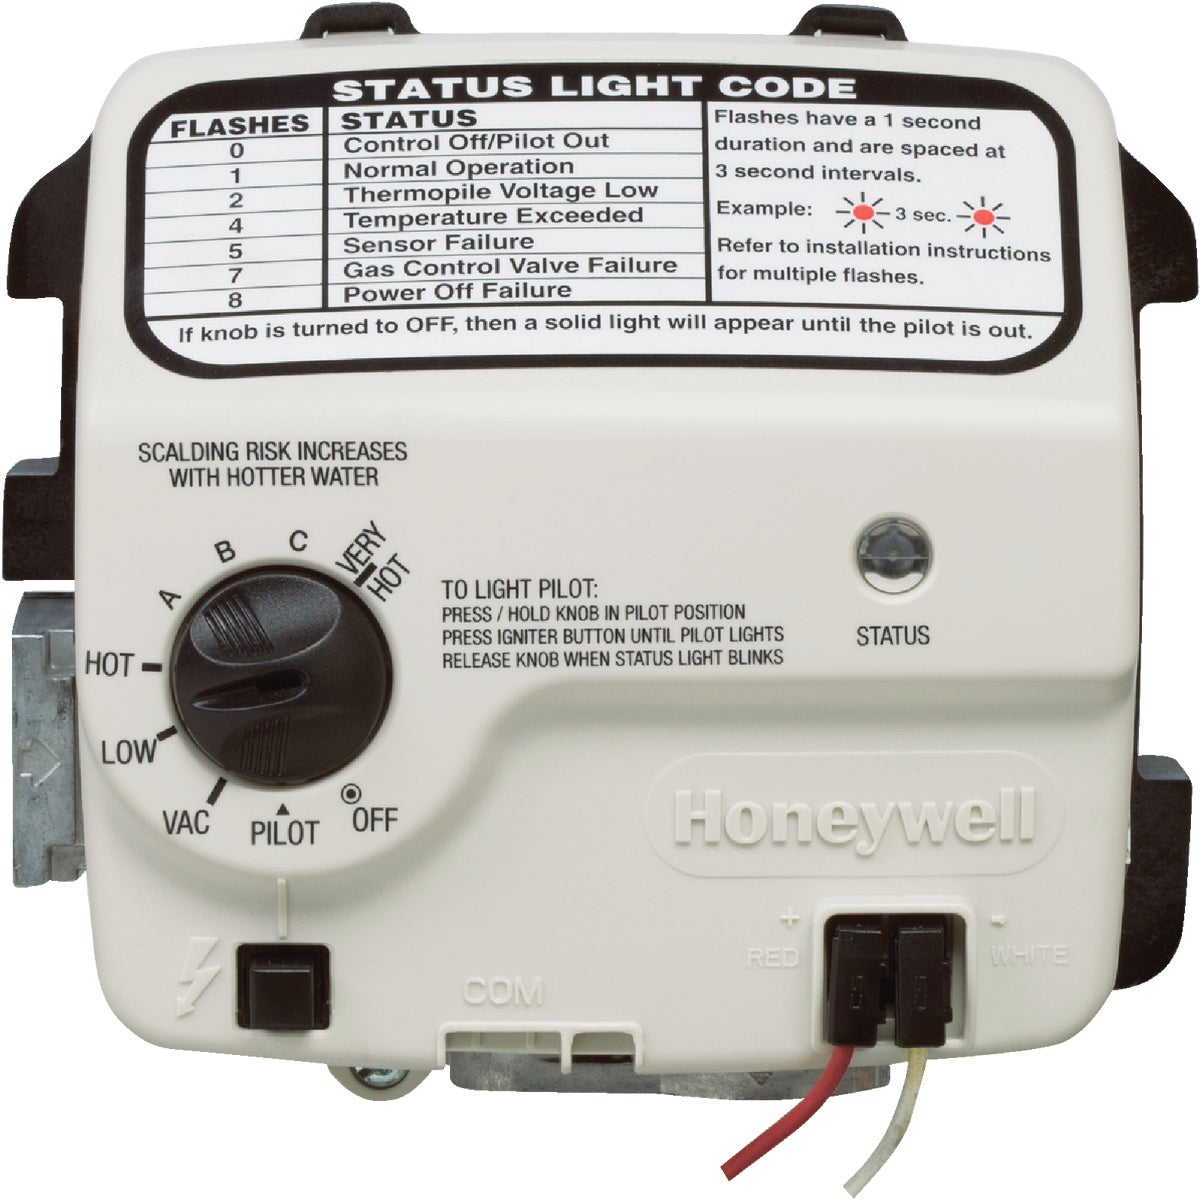 HONEYW NAT GAS CONTROL - 9007884 by Reliance State Ind